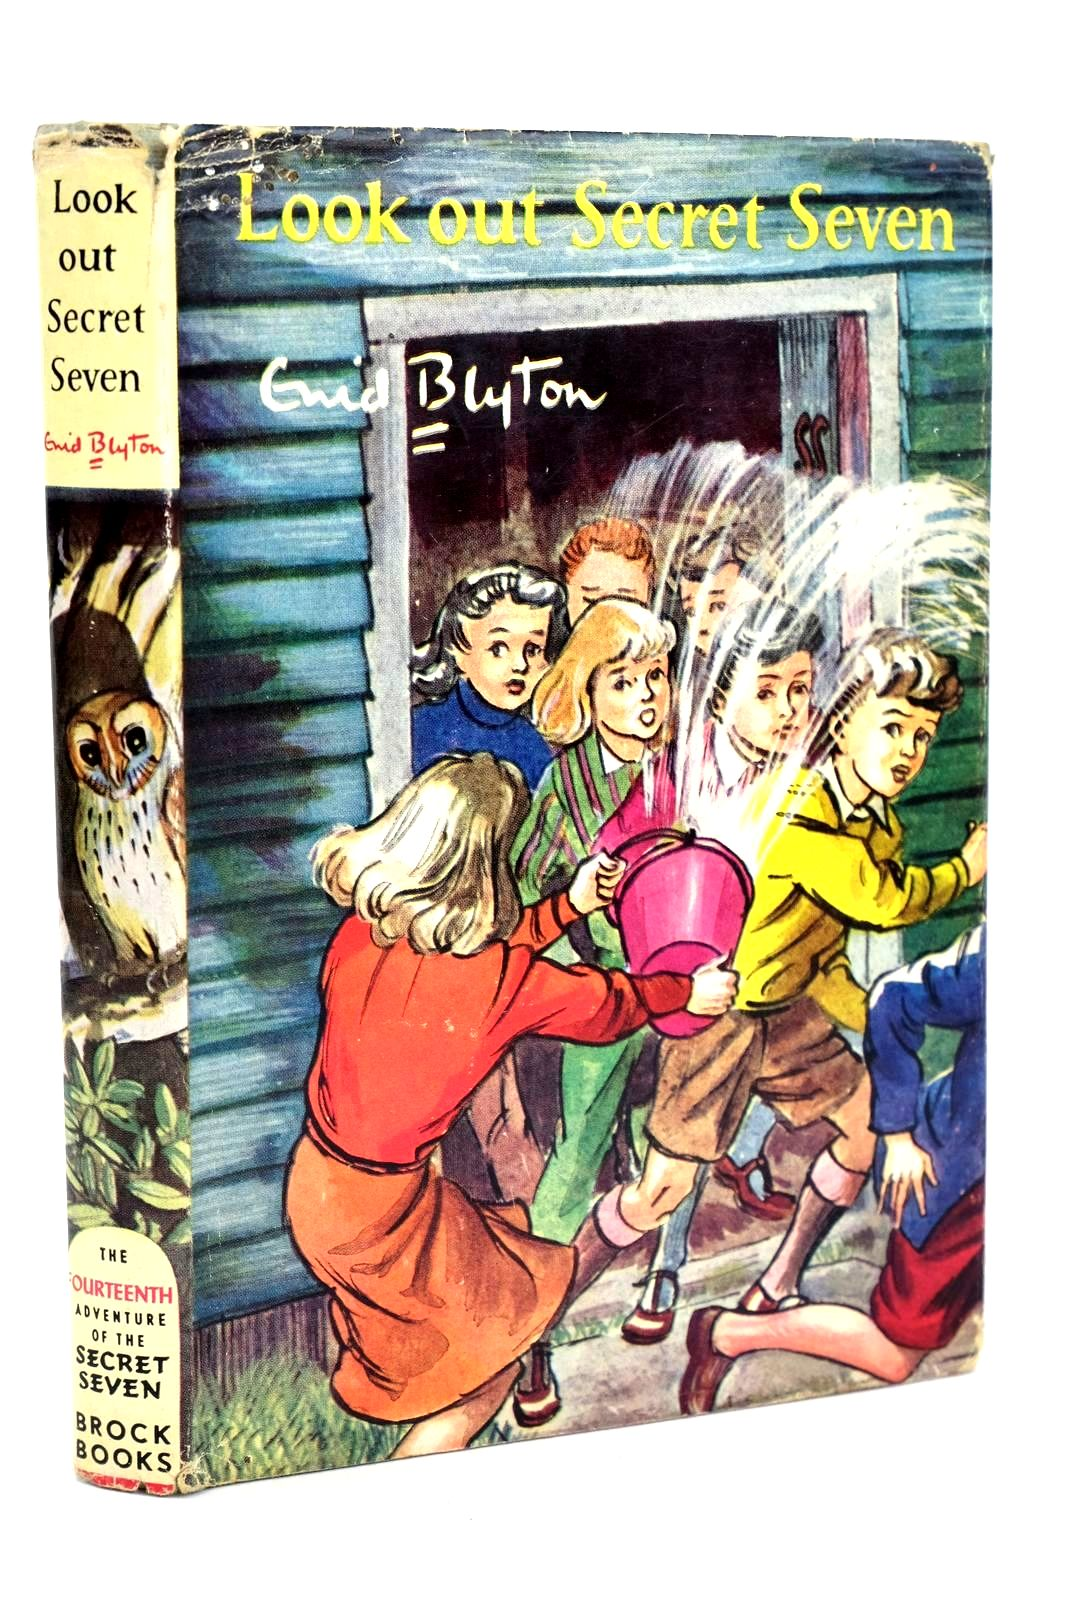 Photo of LOOK OUT SECRET SEVEN written by Blyton, Enid illustrated by Sharrocks, Burgess published by Brockhampton Press (STOCK CODE: 1318545)  for sale by Stella & Rose's Books